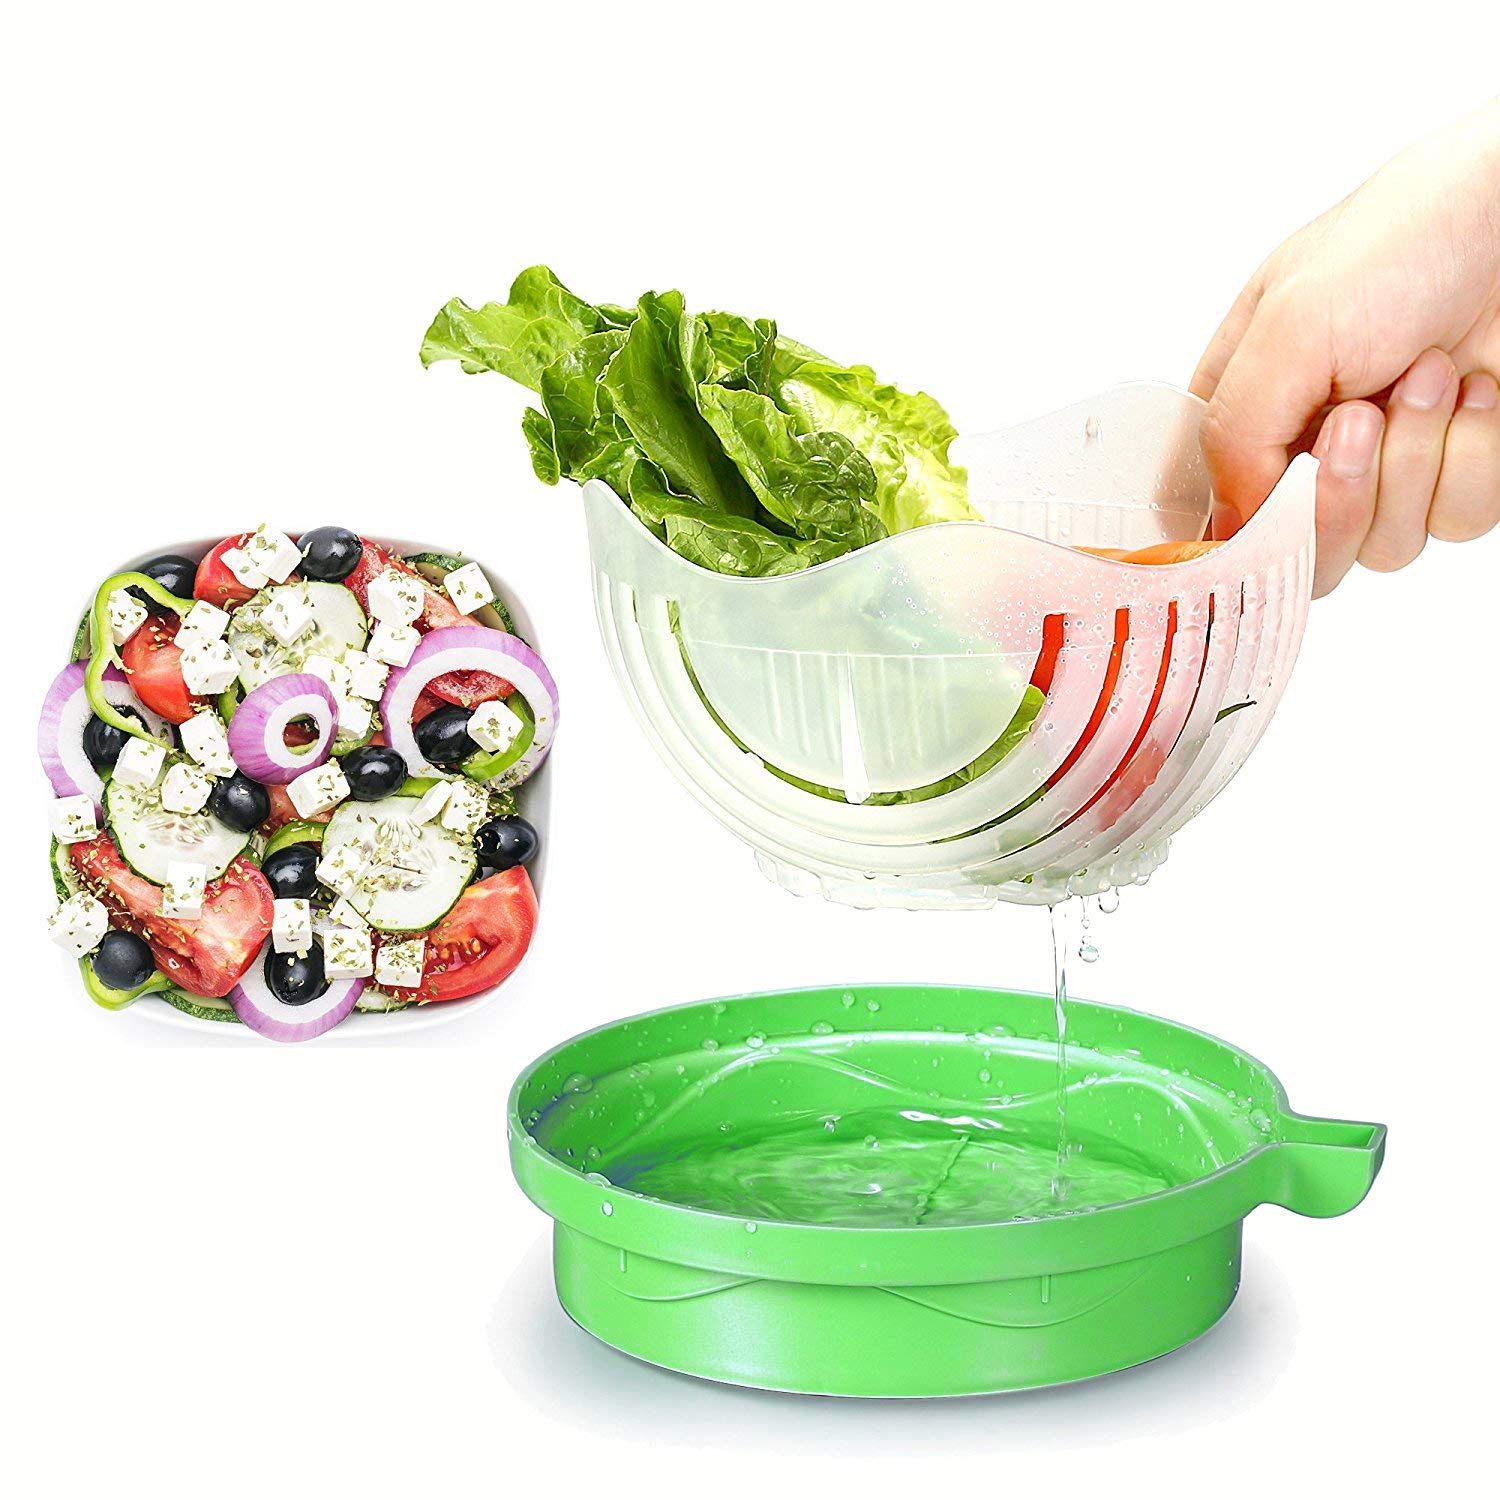 Salad Cutter Bowl 60 Seconds Easy Fresh Salad Cutter and Fast Fruit Vegetable Chopper Salad Maker by Accdata [Bonus Multi-Function Paring Knife] by Accdata (Image #5)